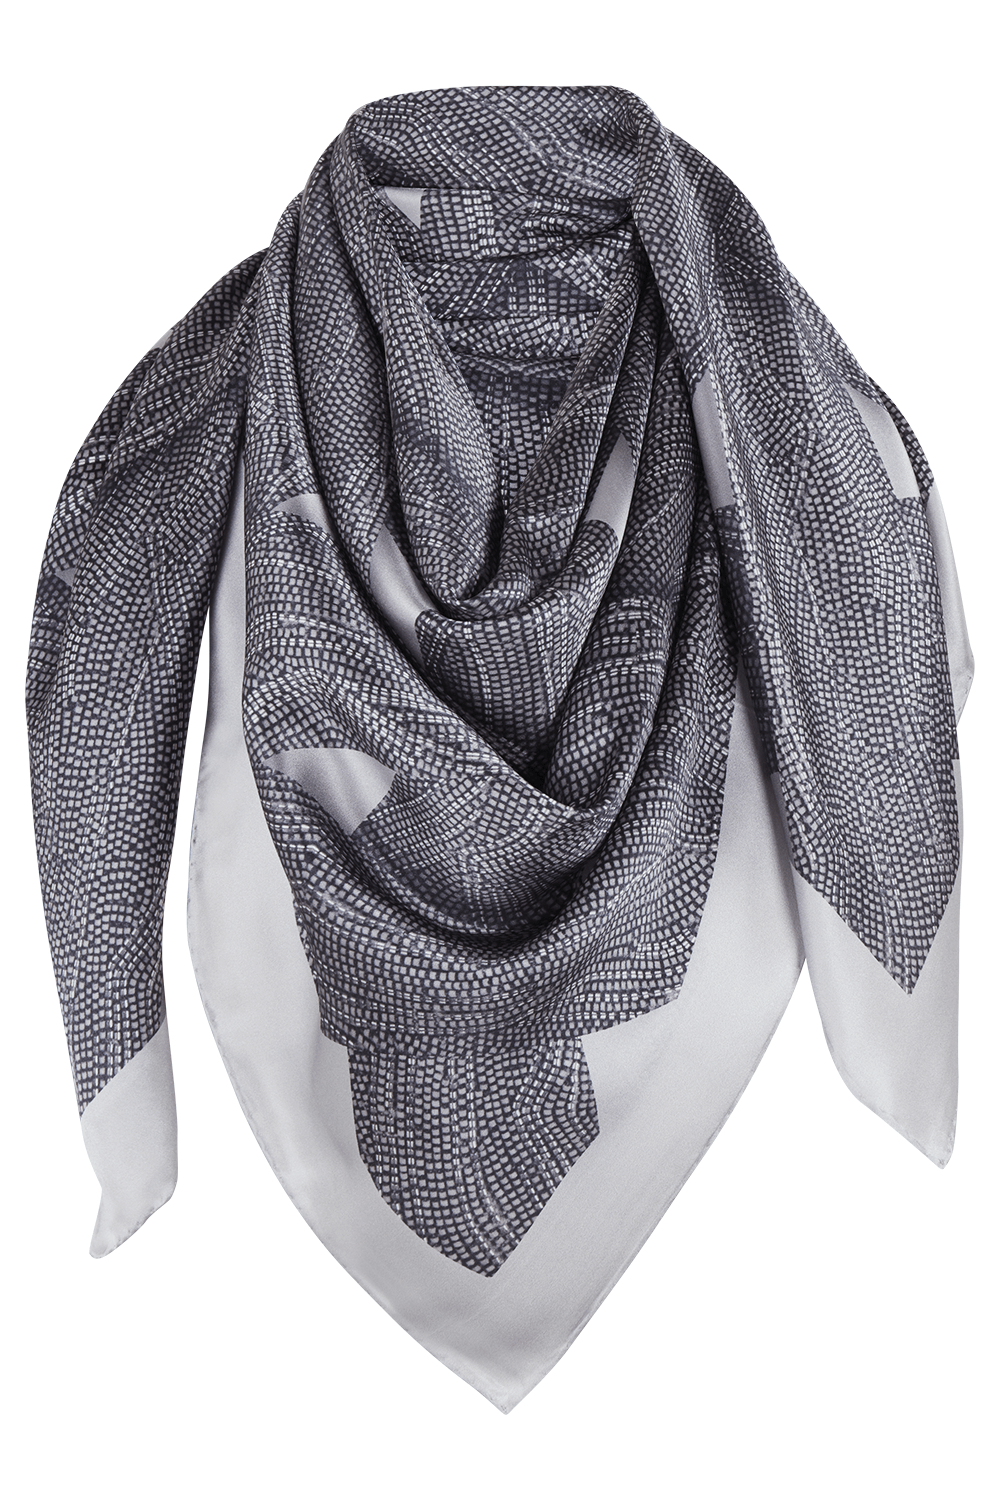 Manakaa Project UG hats & scarves Grey Sustainable Scarf in Peace Silk. sustainable fashion ethical fashion